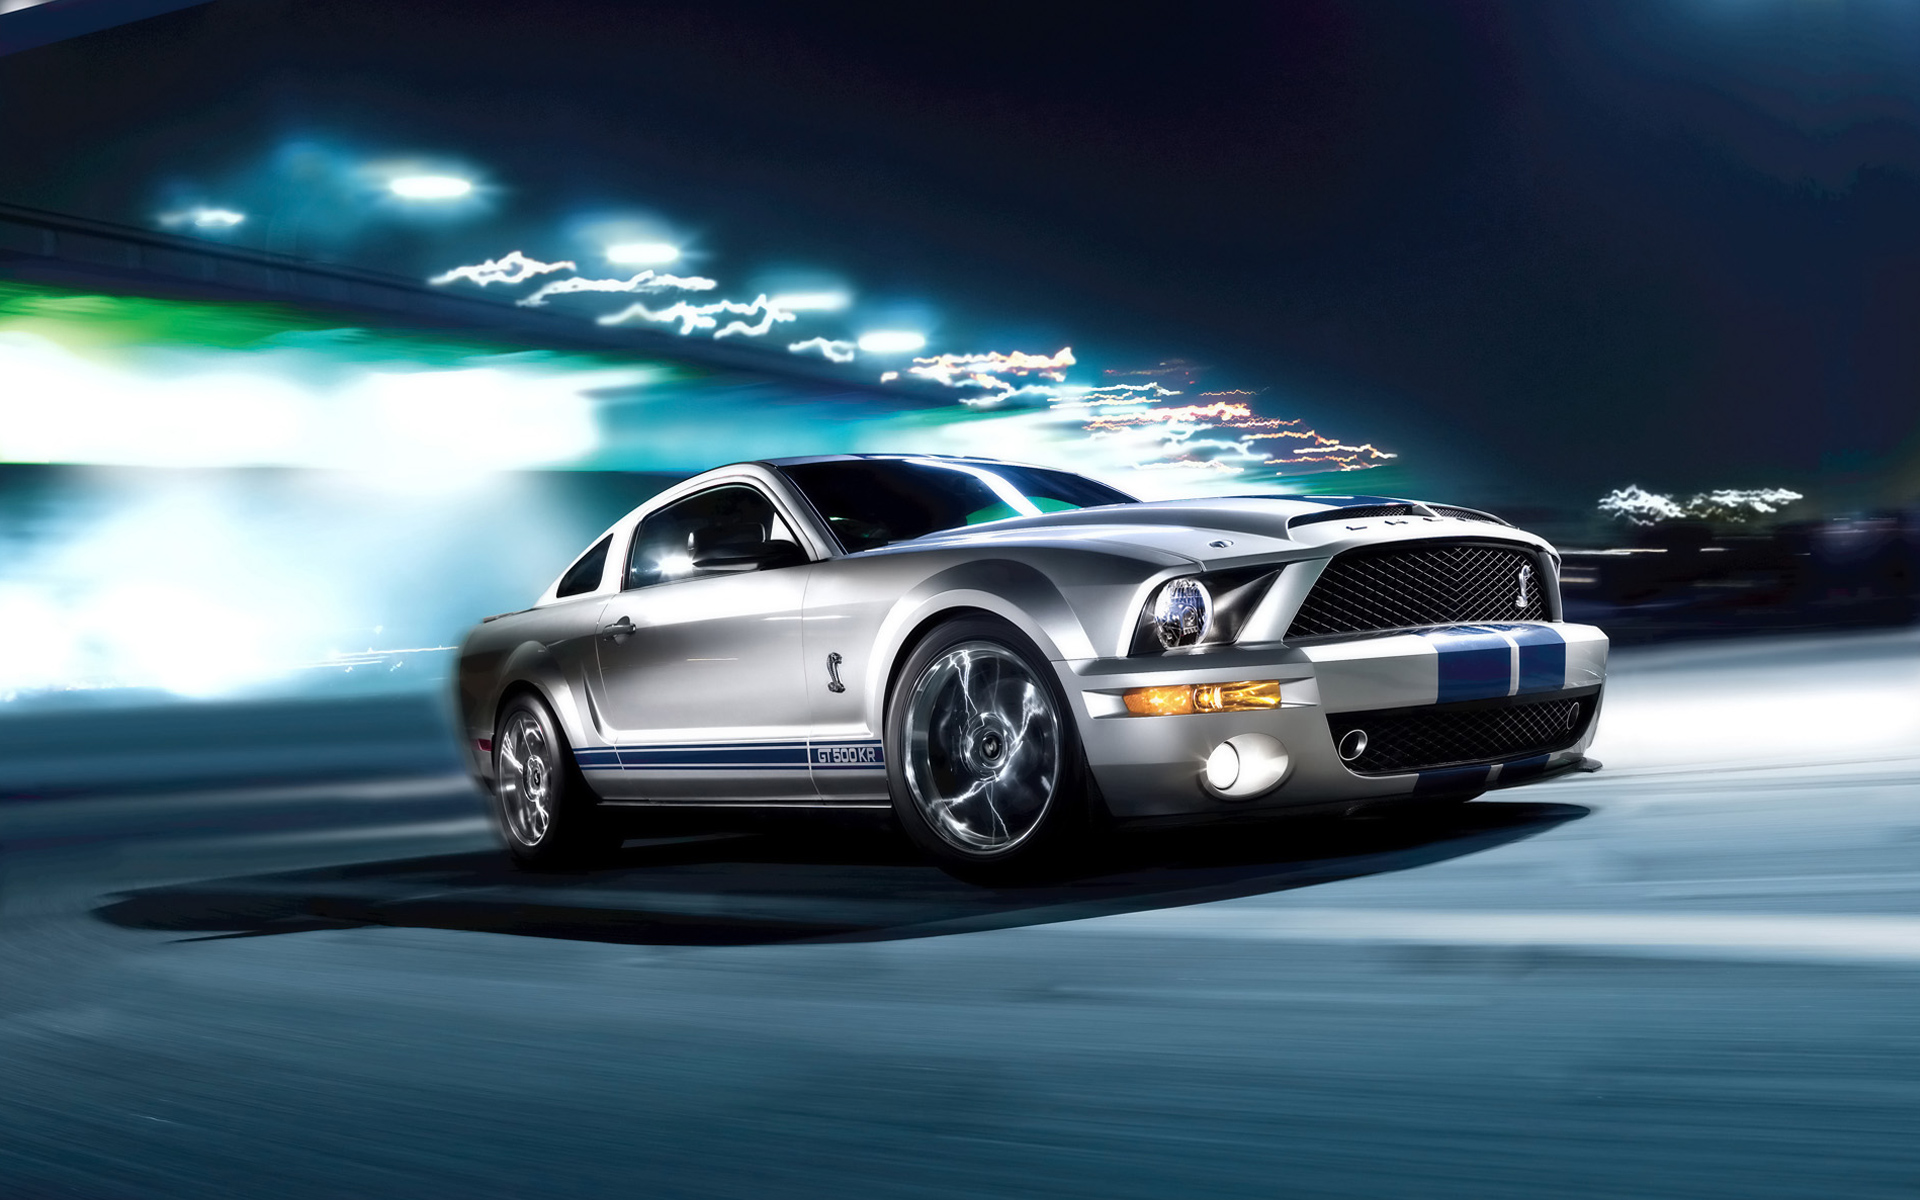 Ford Mustang Shelby Wallpapers HD Wallpapers 1920x1200